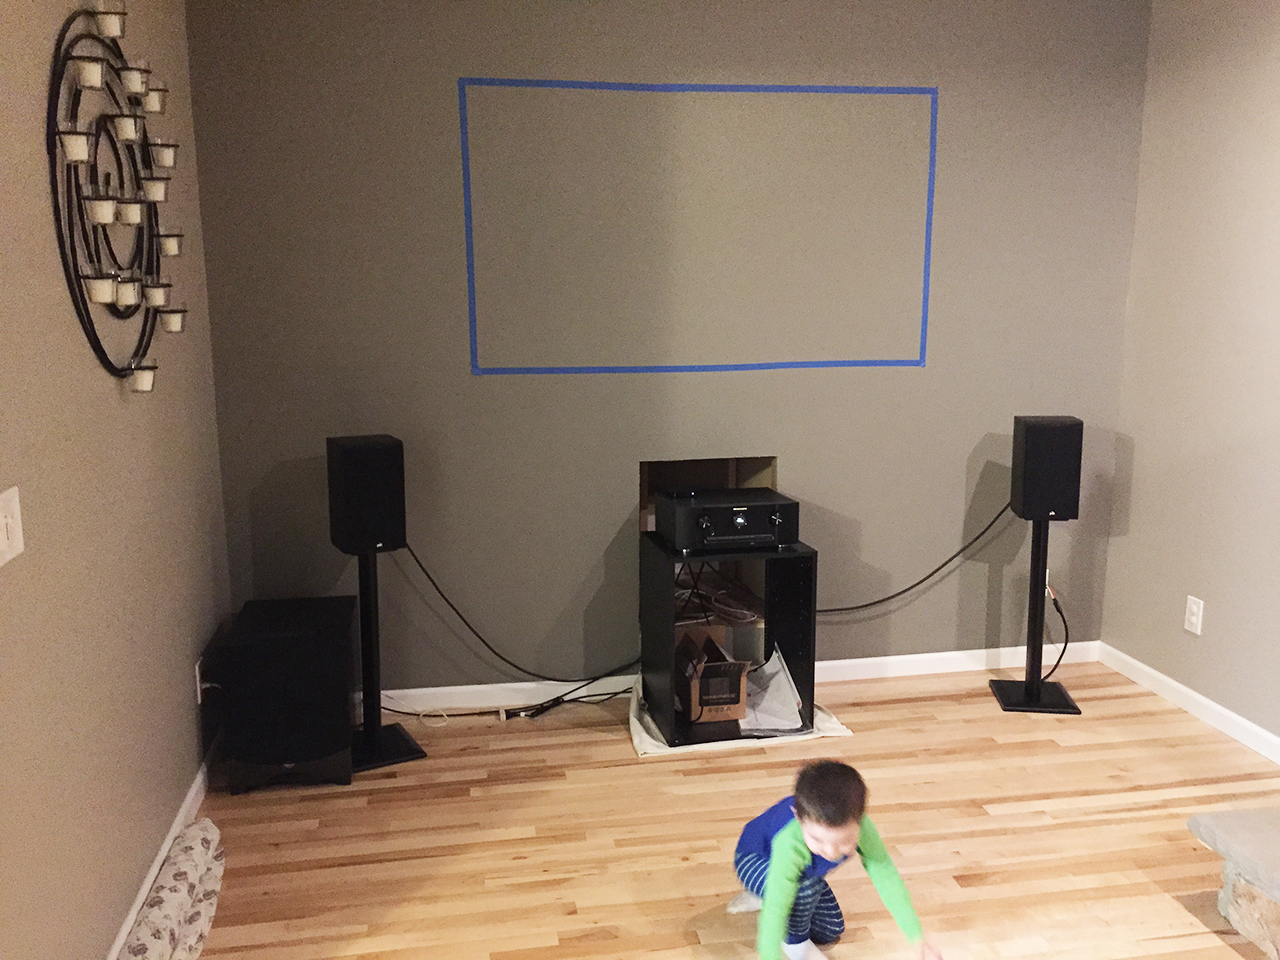 Subwoofer Location Testing Advice Welcome Avs Forum Home Theater Discussions And Reviews